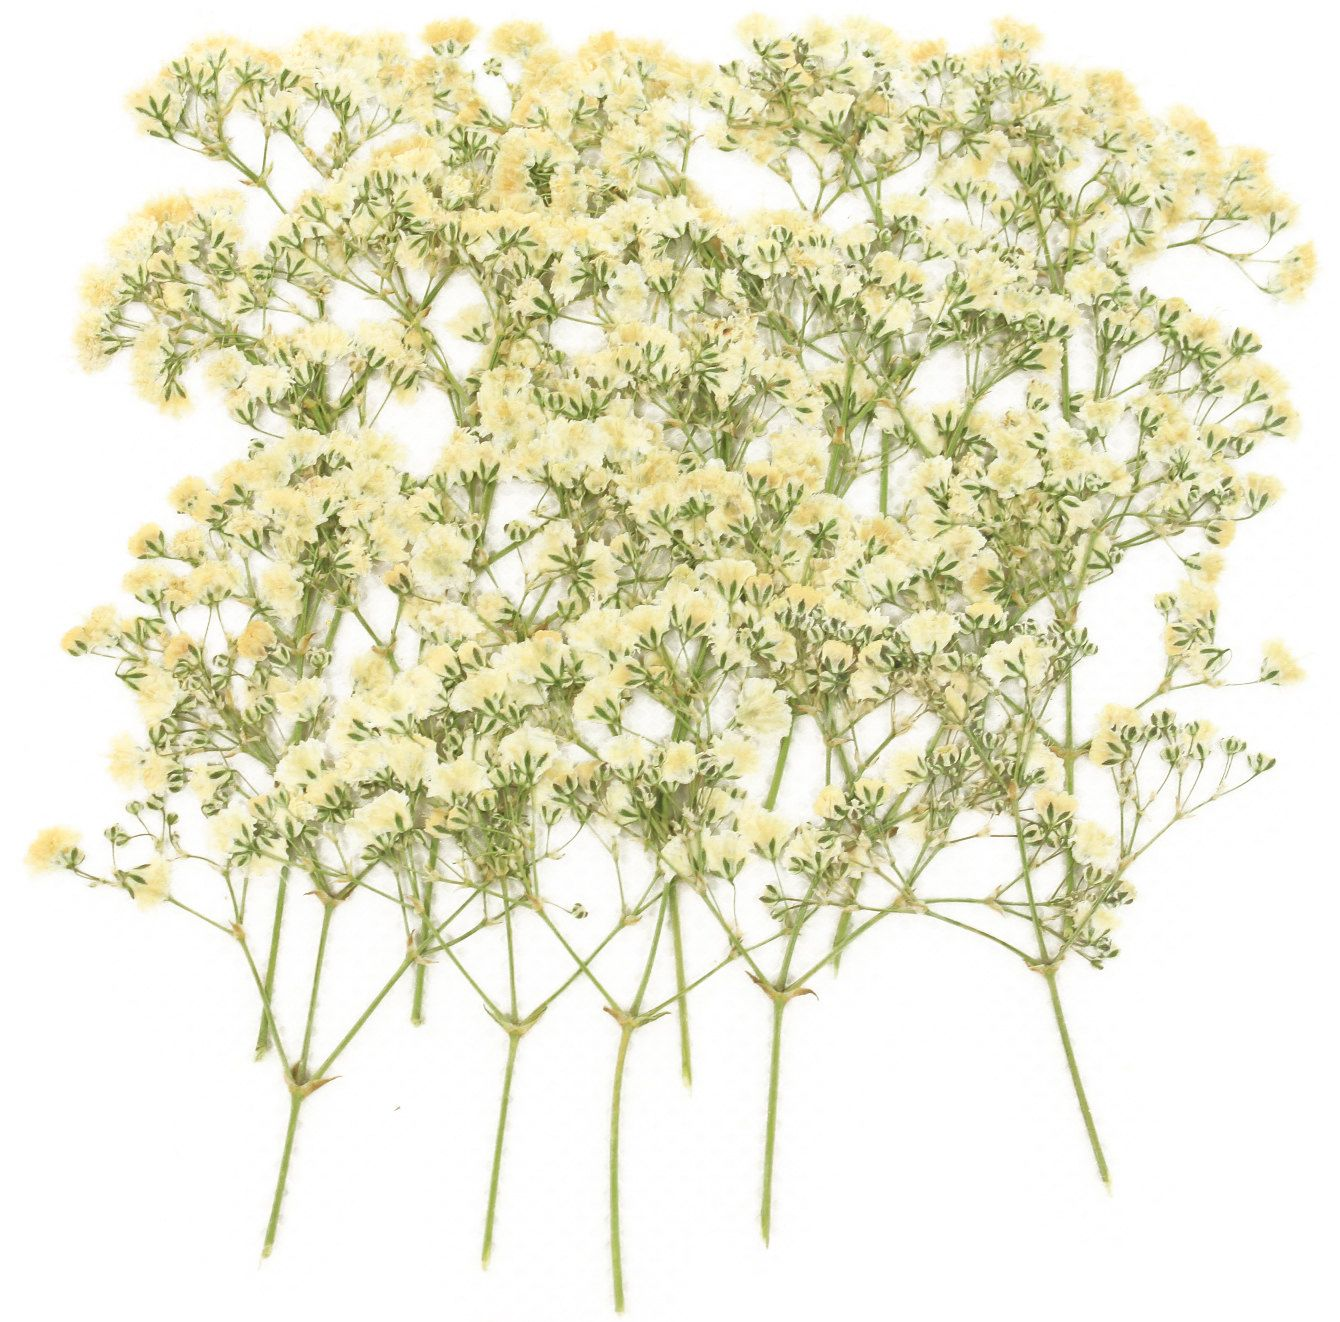 How to scrapbook dried flowers - Pressed Flowers White Baby Breath Gypsophila 20pcs For Floral Art Craft Card Making Scrapbooking Home Decoration